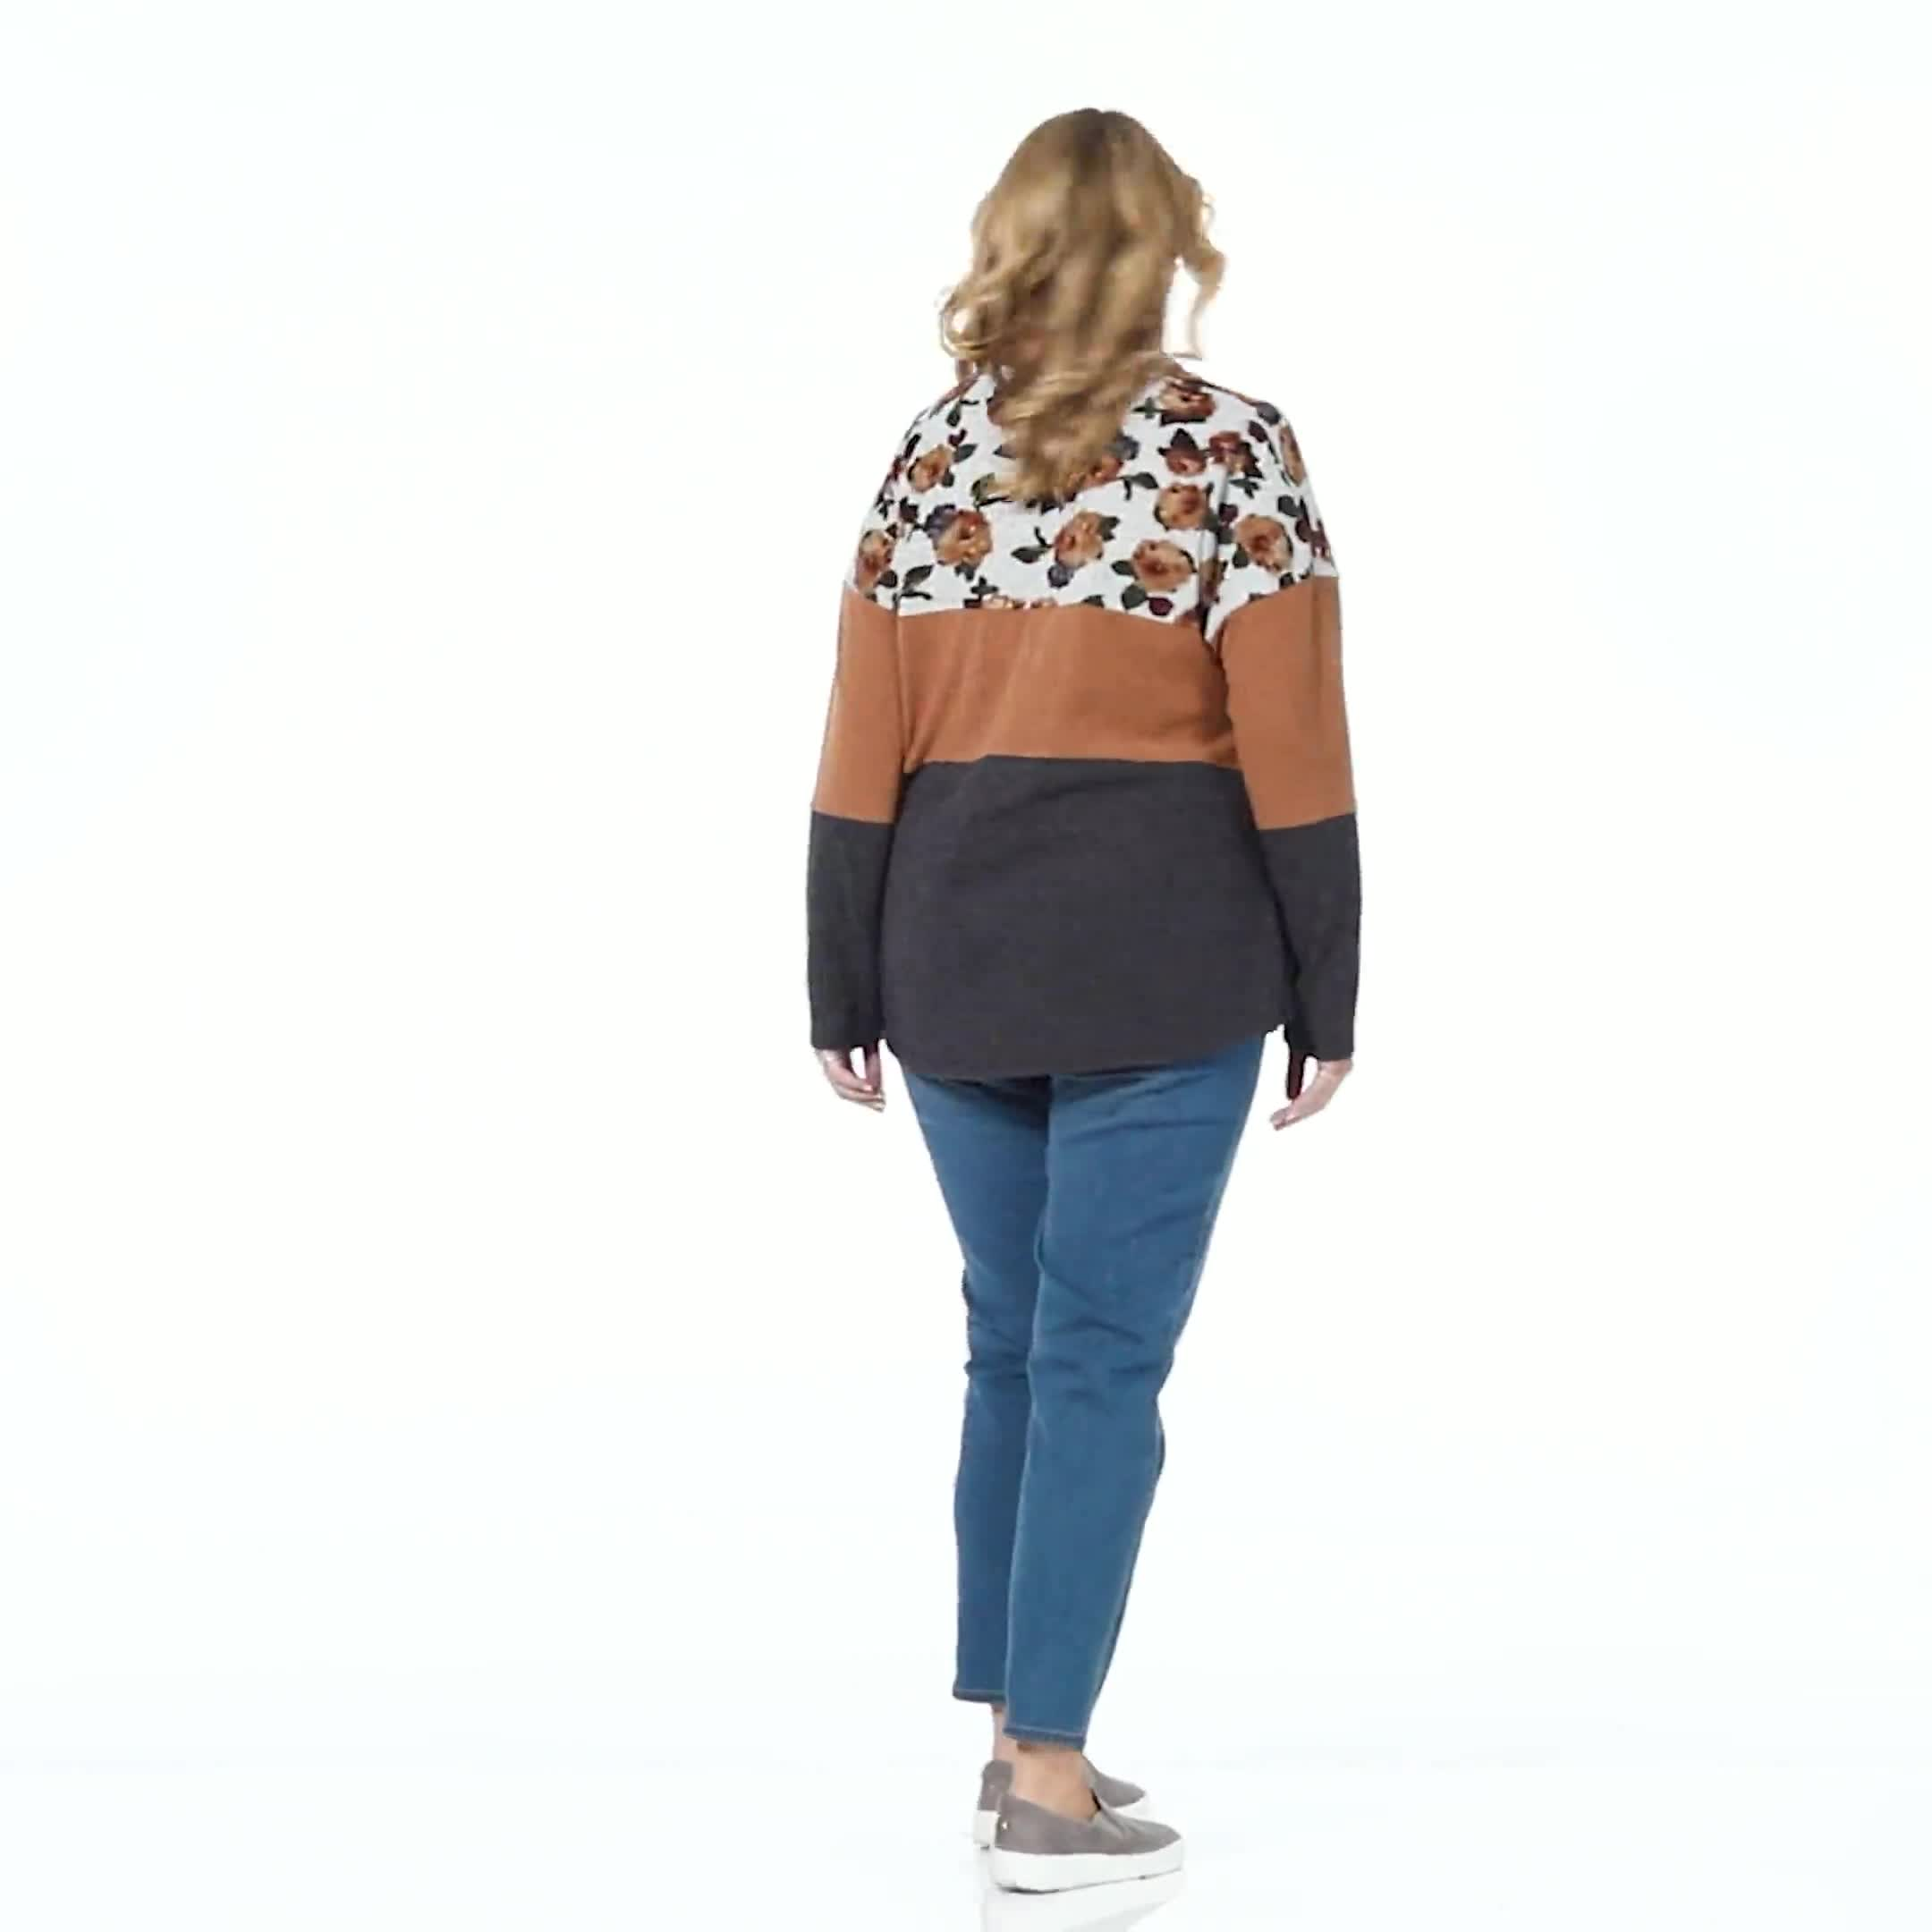 Westport Floral Hacci Sweater Knit Top - Plus - Video